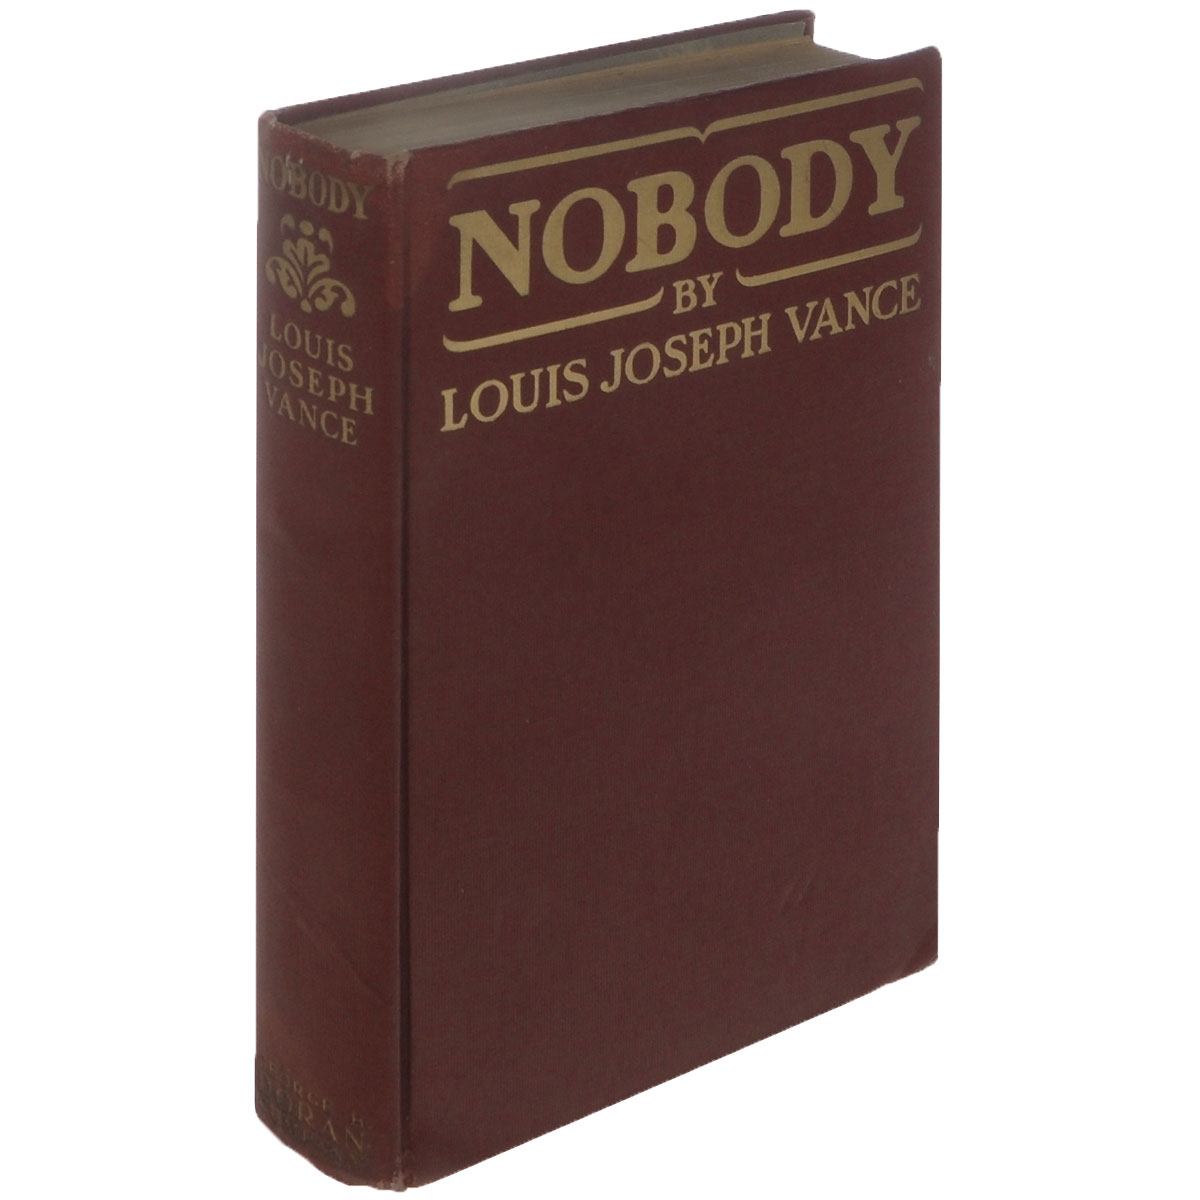 Nobody4002064407135Нью Йорк, 1915. George H. Dorah Сompany. Издательский переплет, сохранность хорошая. На обложке потертости, пятна. Louis Joseph Vance was an American novelist, born in Washington, D. C., and educated in the preparatory department of the Brooklyn Polytechnic Institute. He wrote short stories and verse after 1901, then composed many popular novels.